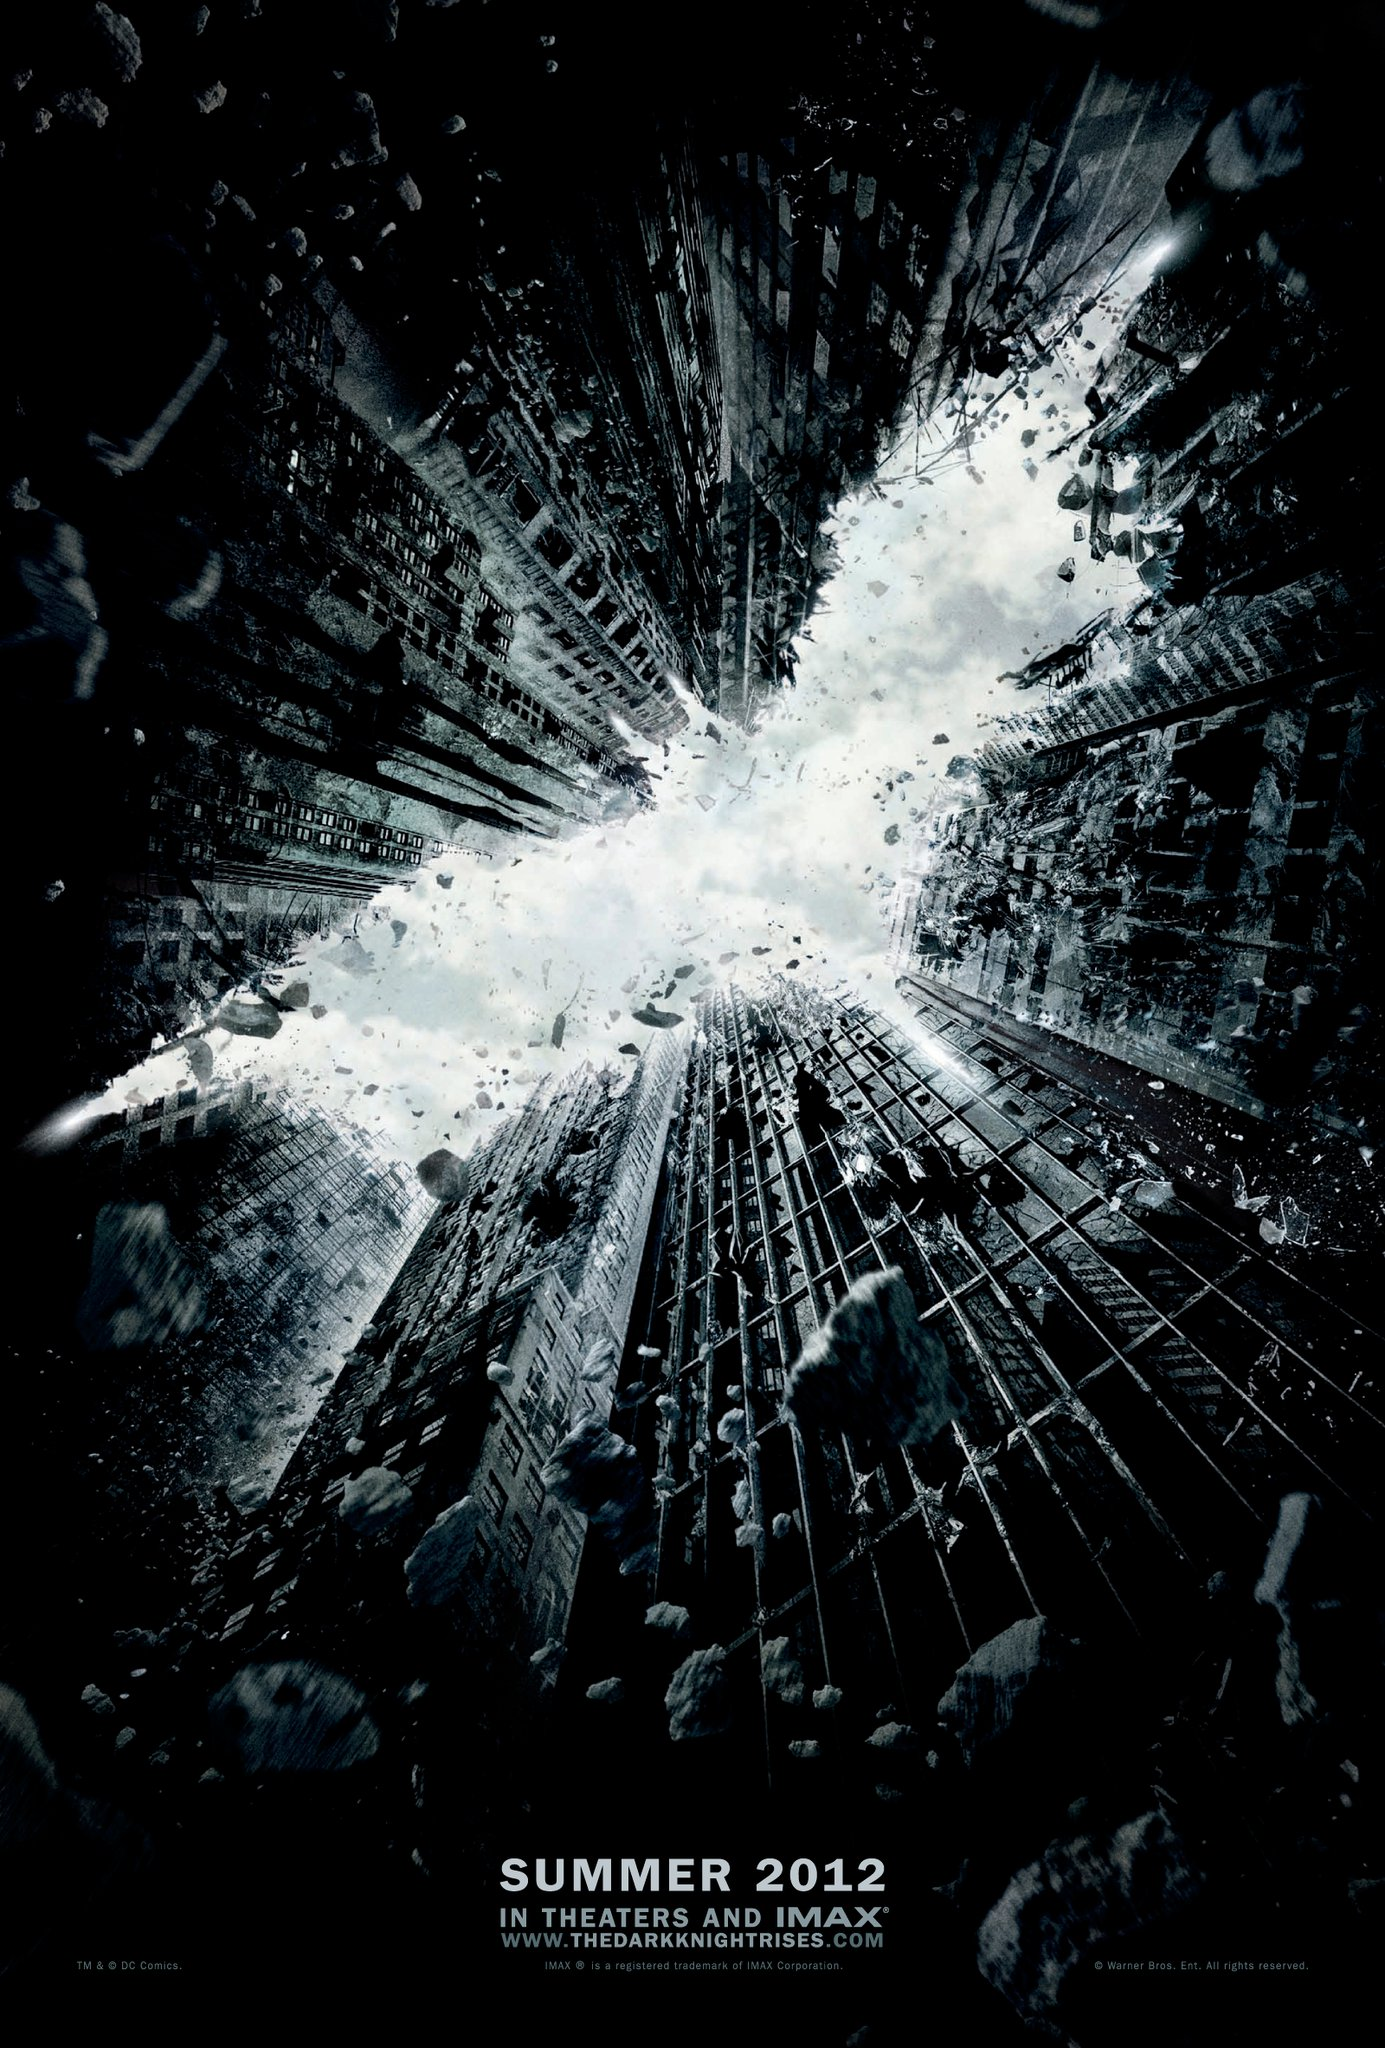 'The Dark Knight Rises' Teaser Trailer Hits the Web